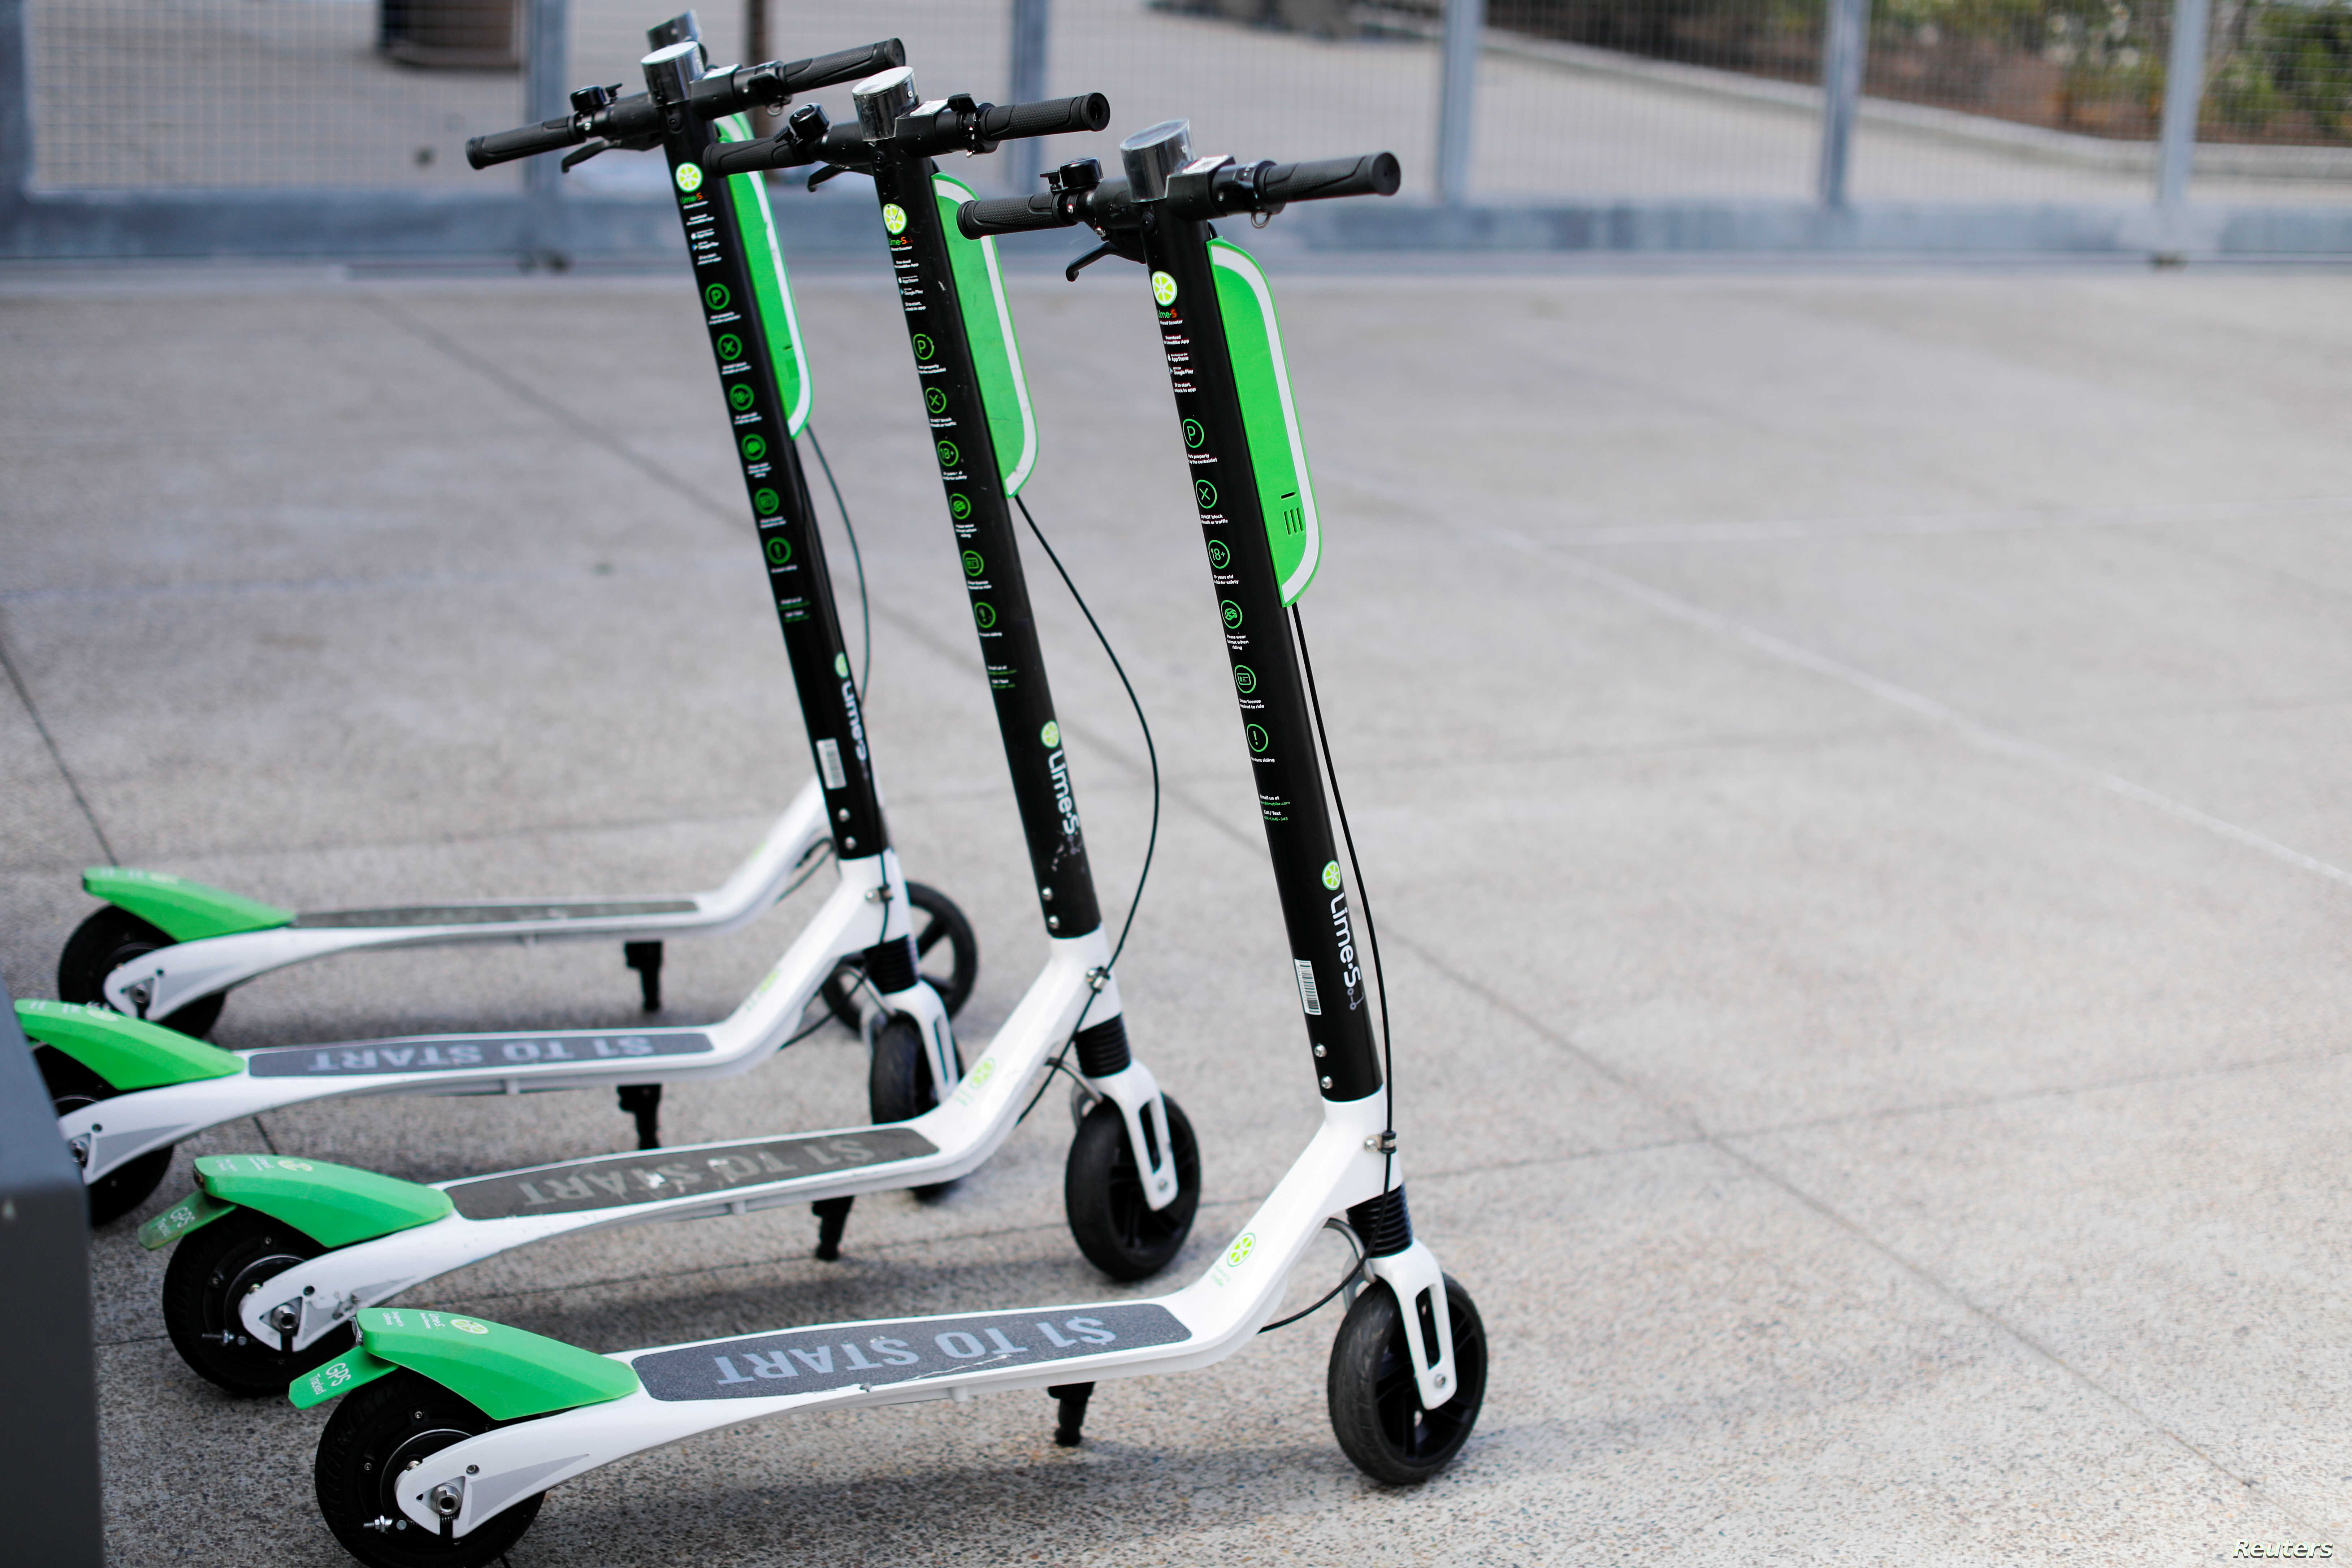 Smart phone app time-of-use electric scooters from Lime-S are shown parked along a sidewalk in San Diego, California, May 17, 2018.